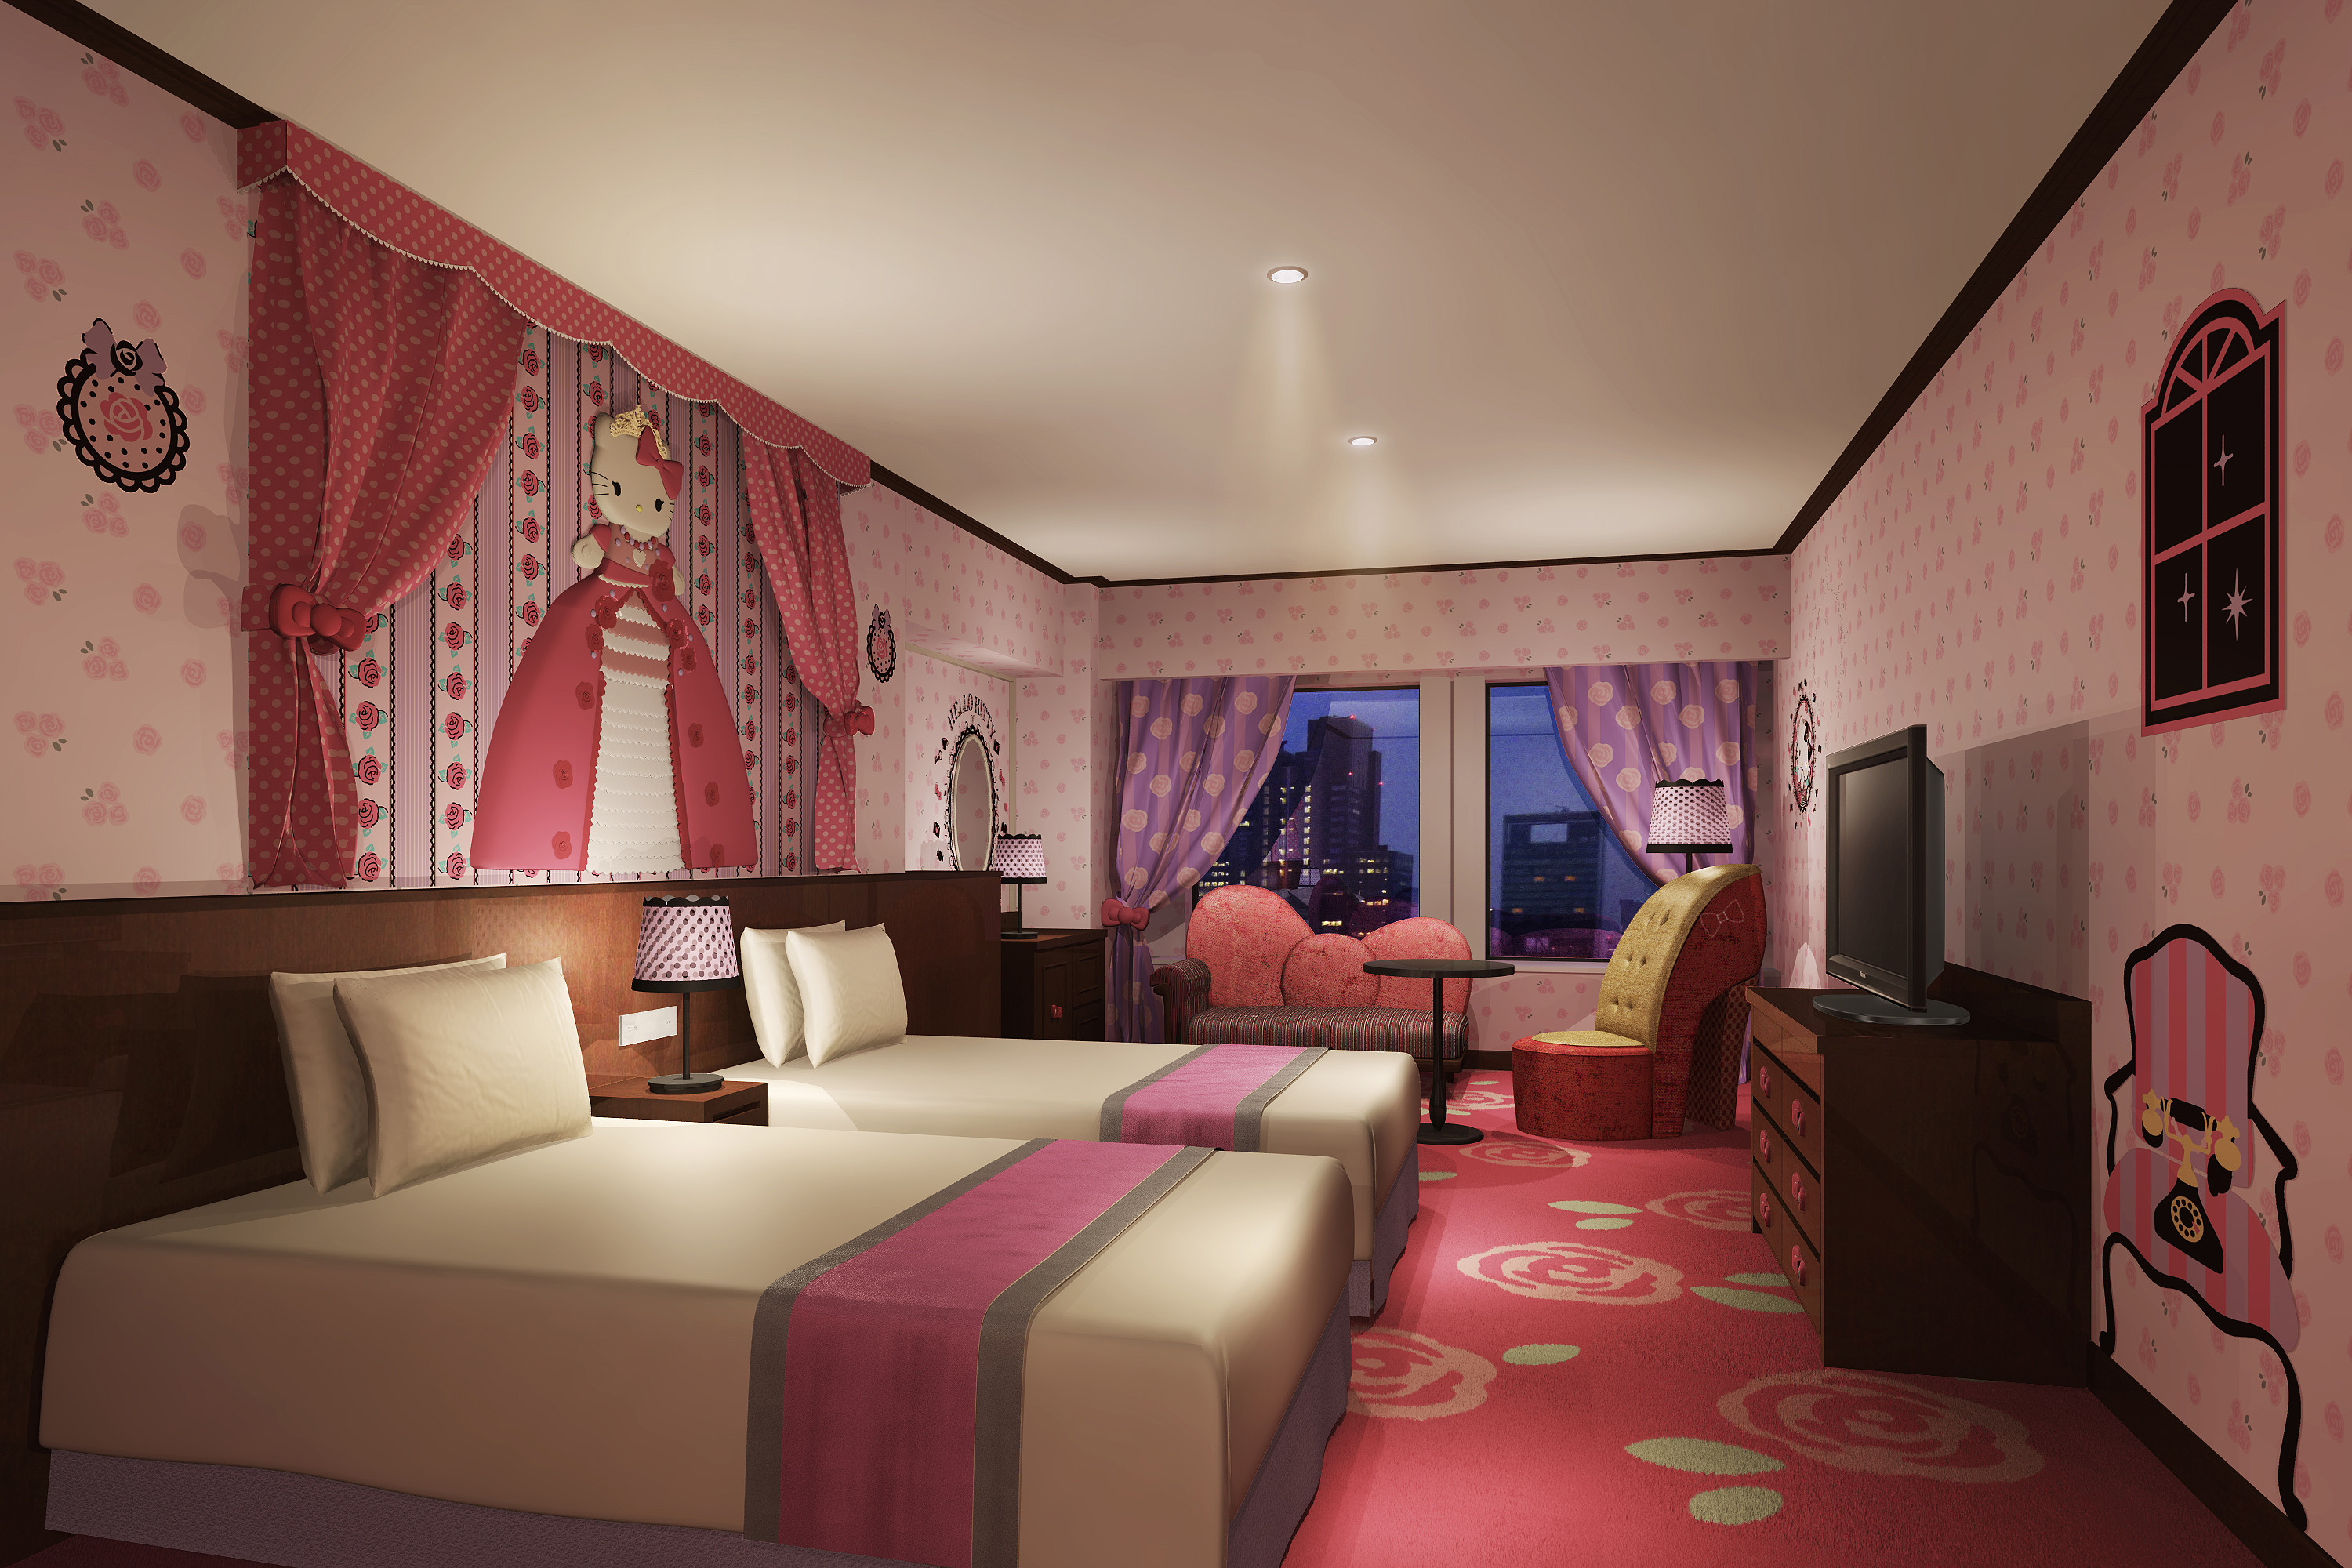 Keio plaza hotel starts hello kitty rooms business wire - Princesse kitty ...